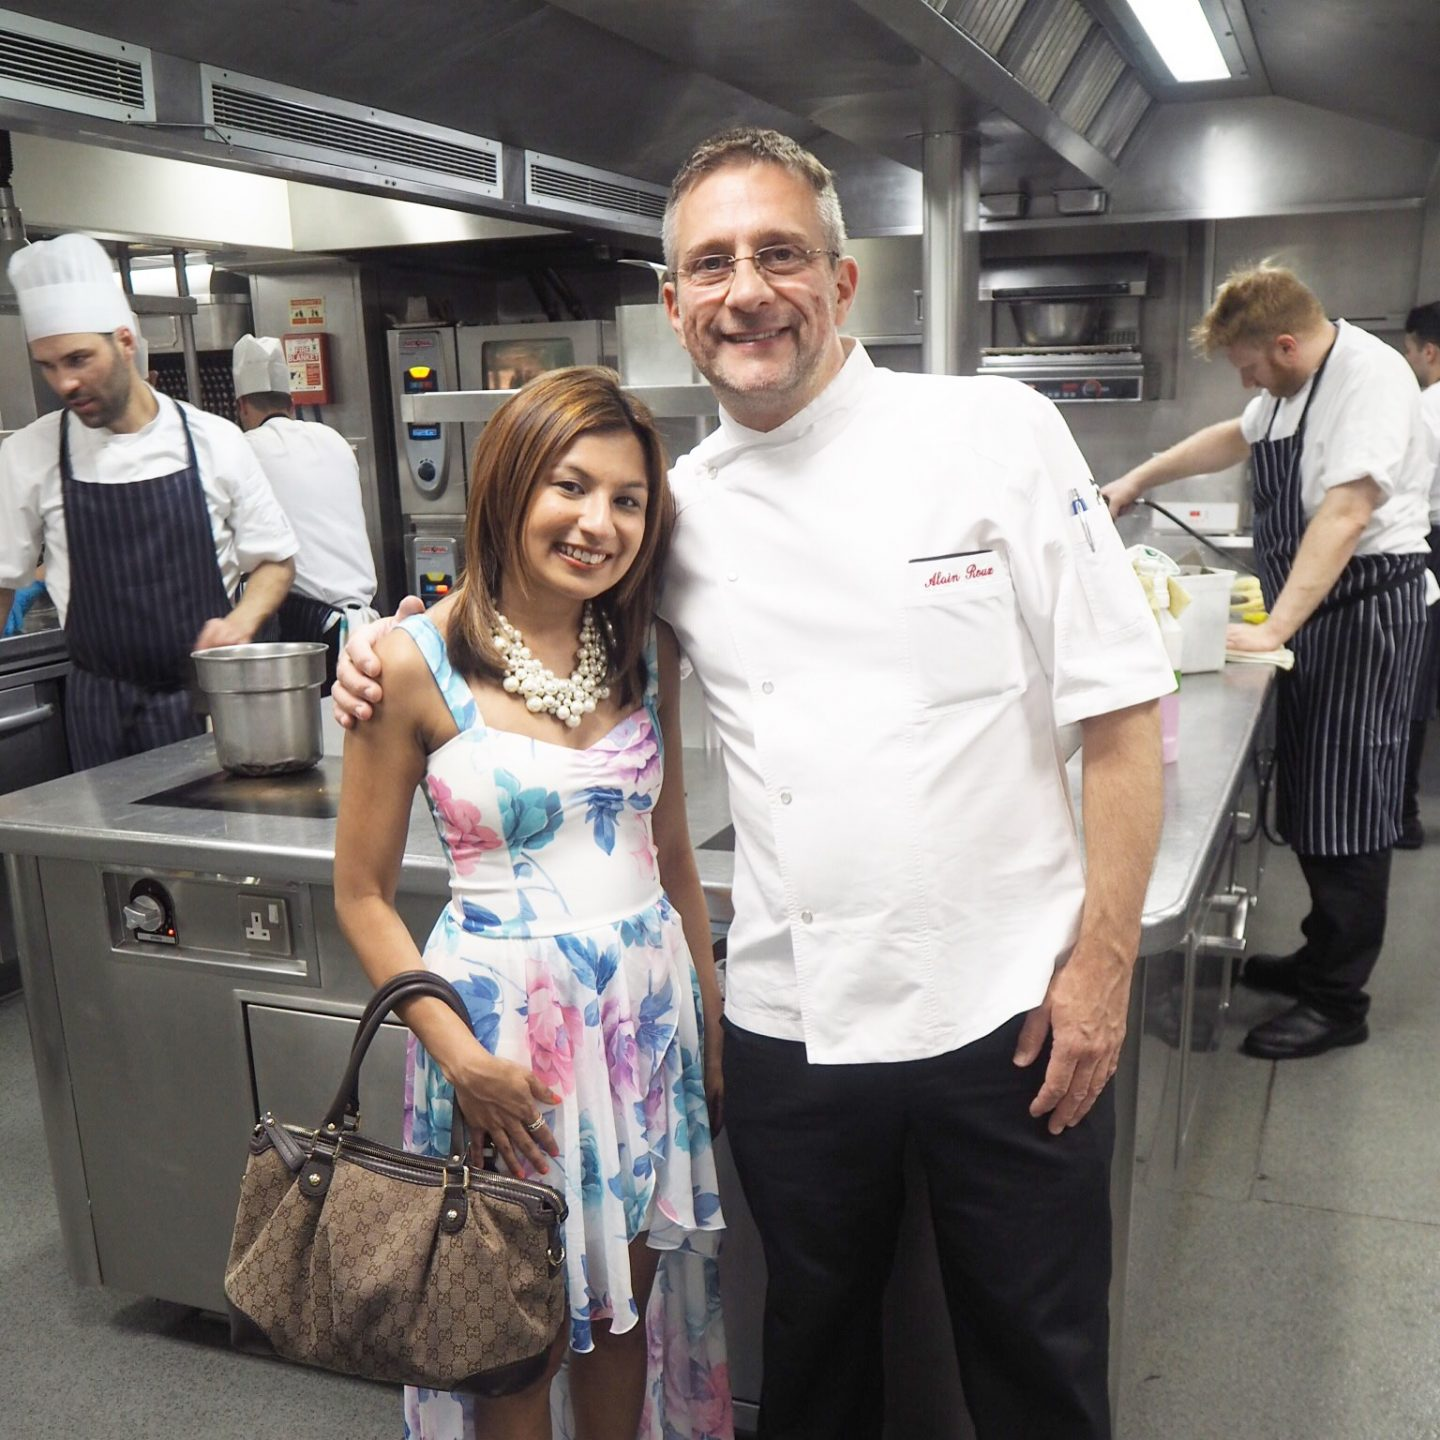 An amazing Three Michelin Star Lunch at The Waterside Inn and meeting Chef Alain Roux